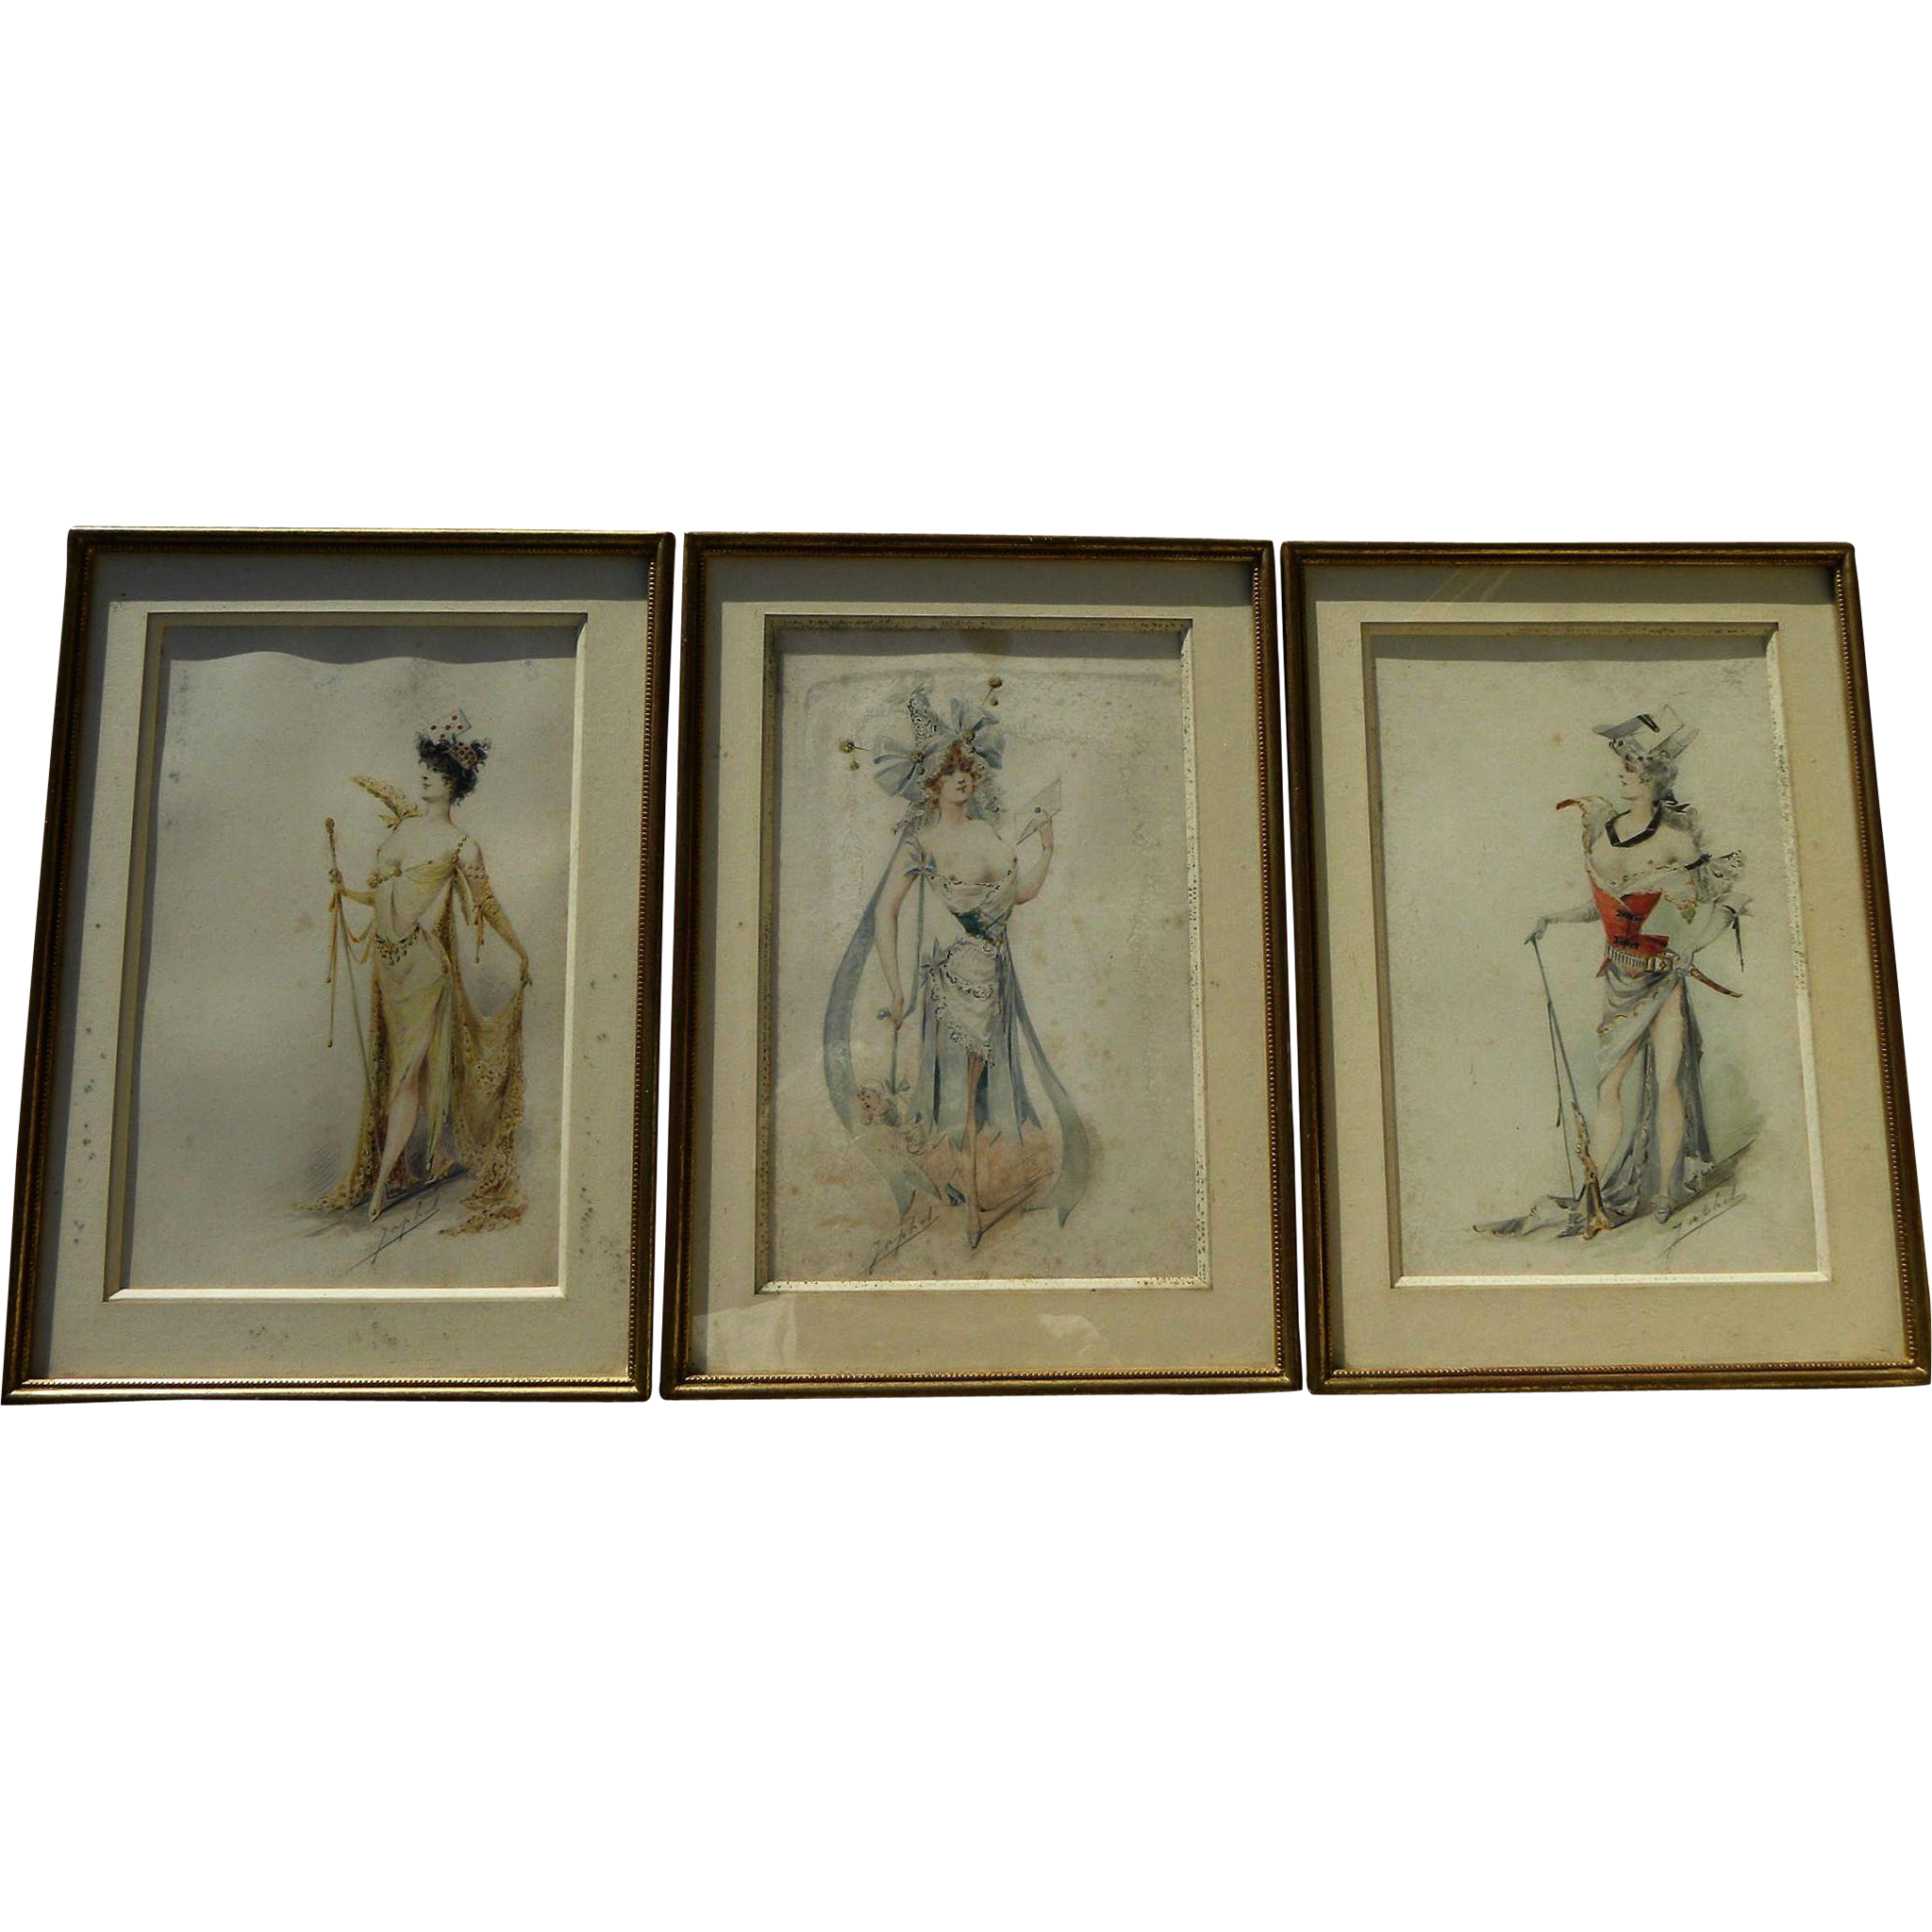 ALEXANDRE JEAN LOUIS JAZET (1814-1897) ***three*** original Art Nouveau watercolor drawings of women in elaborate costumes by noted French illustrator artist